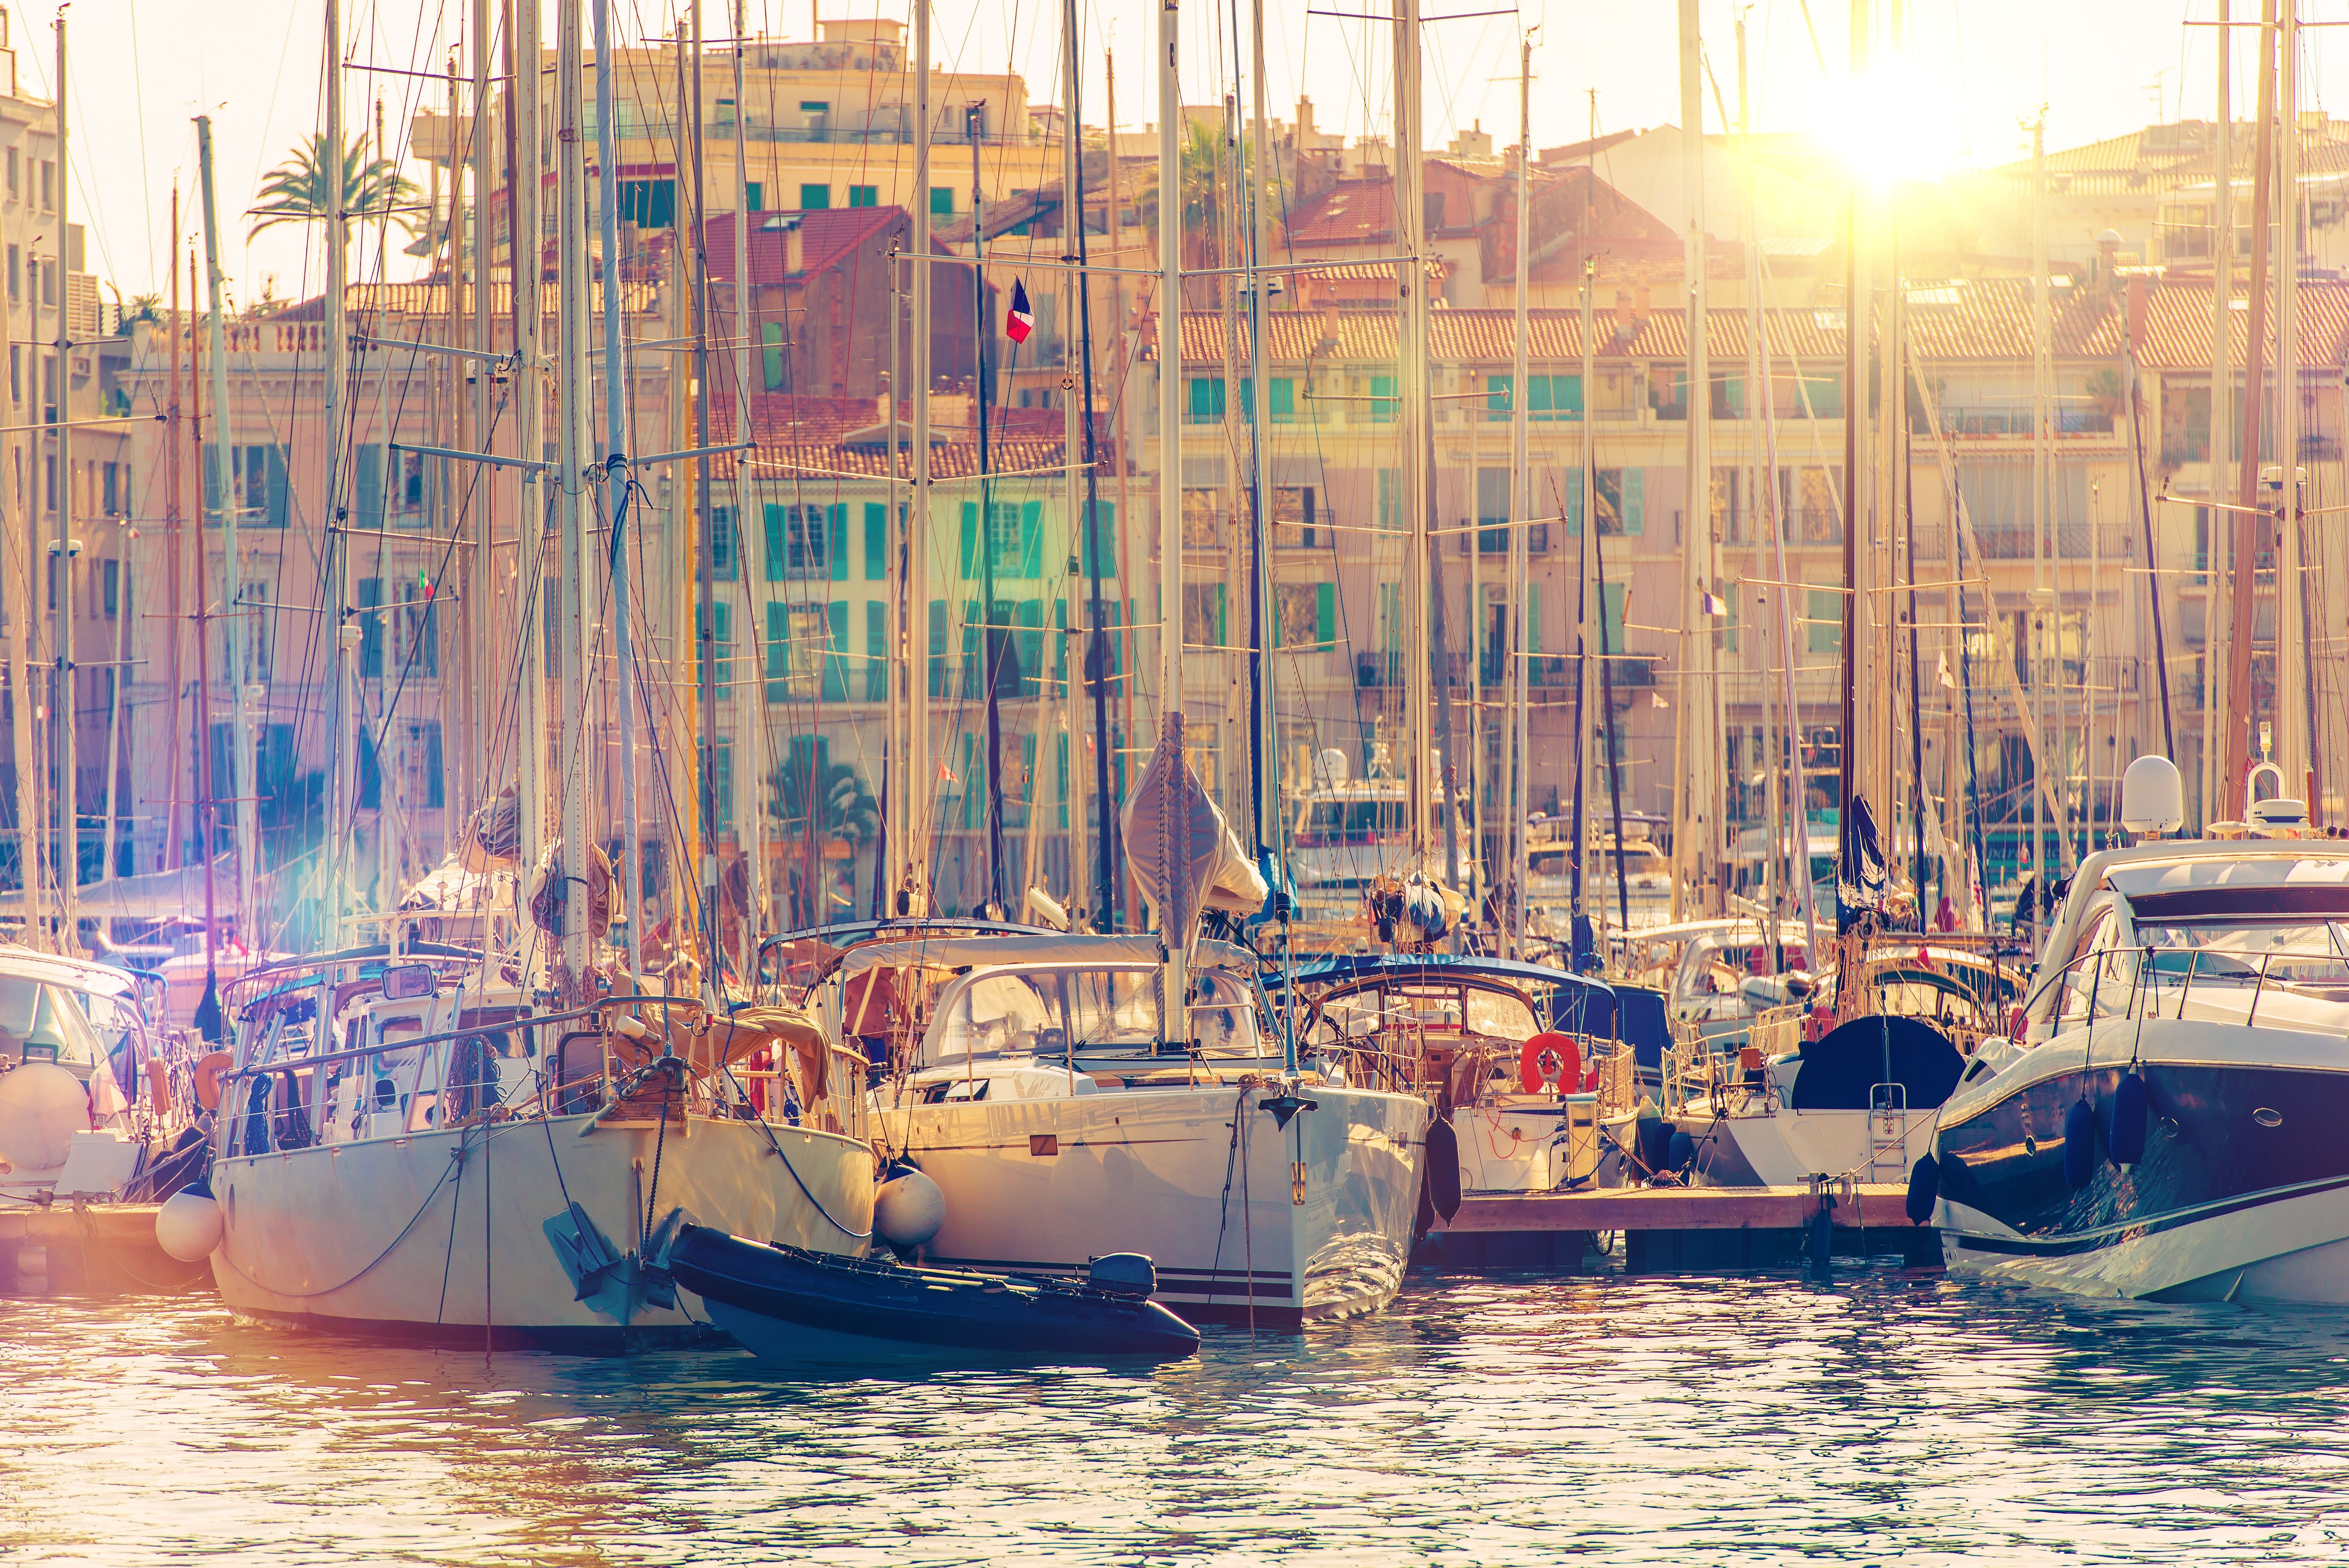 Your guide to move to Cannes on the Côte d'Azur